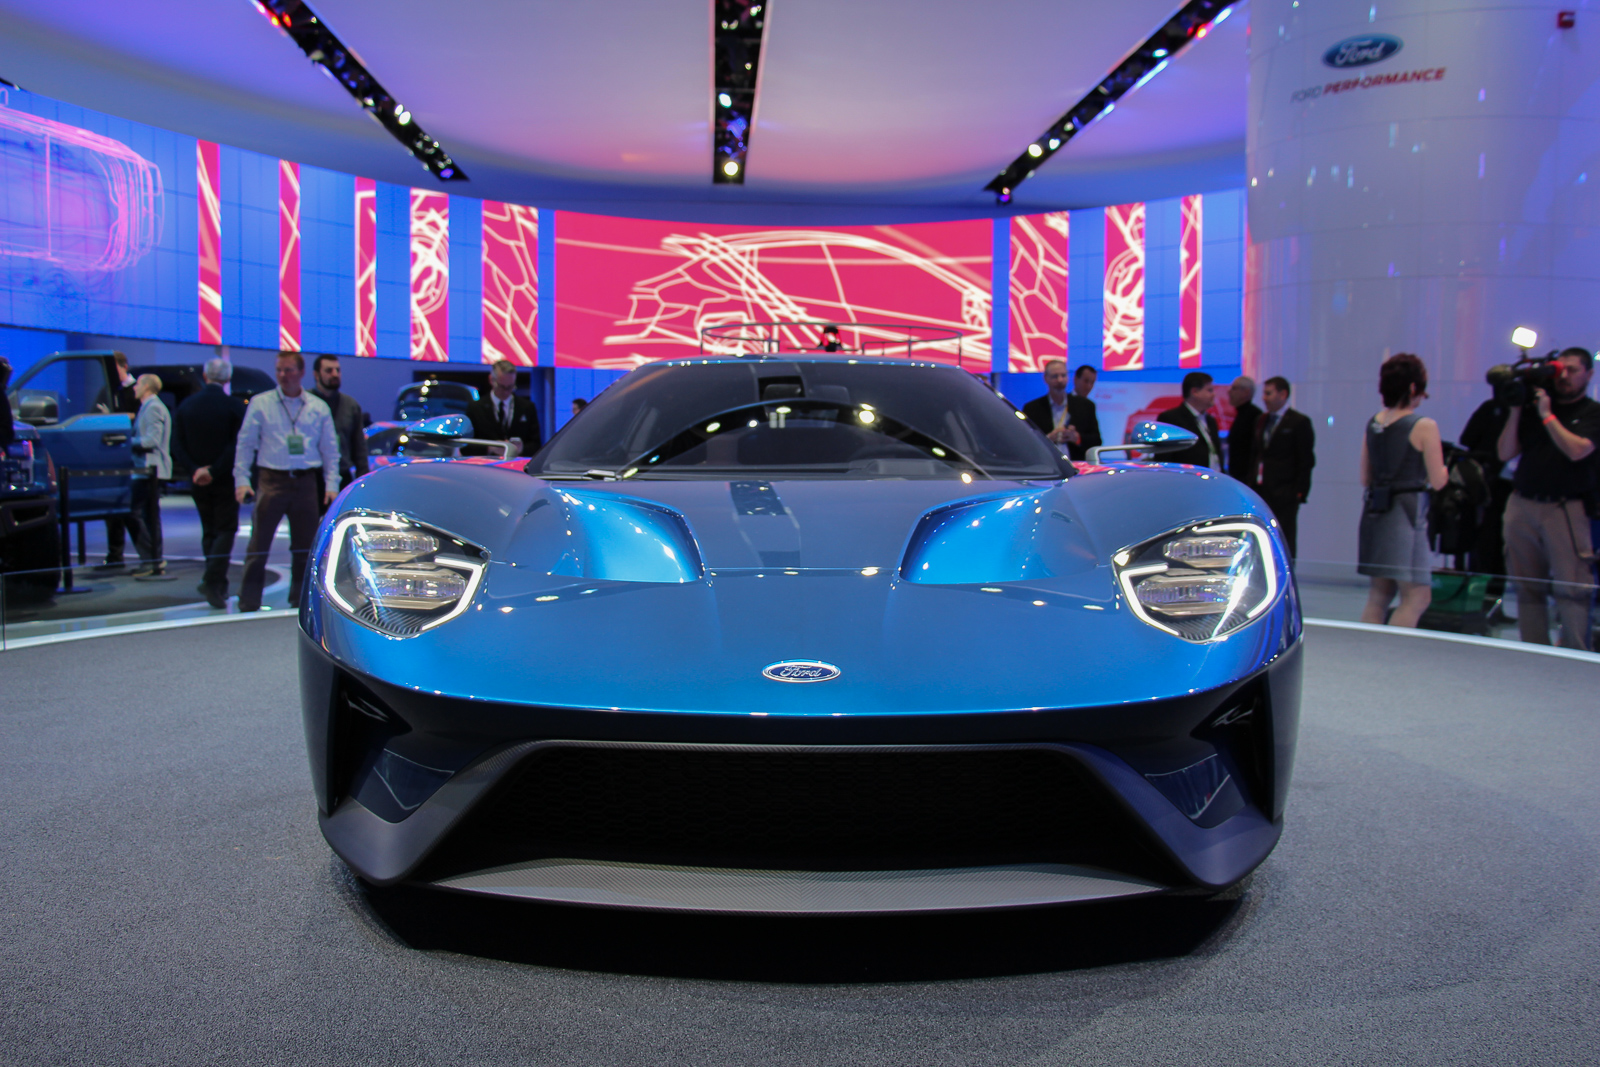 Ford-GT-2016-Concept-NAIAS-2015-Highlights-8